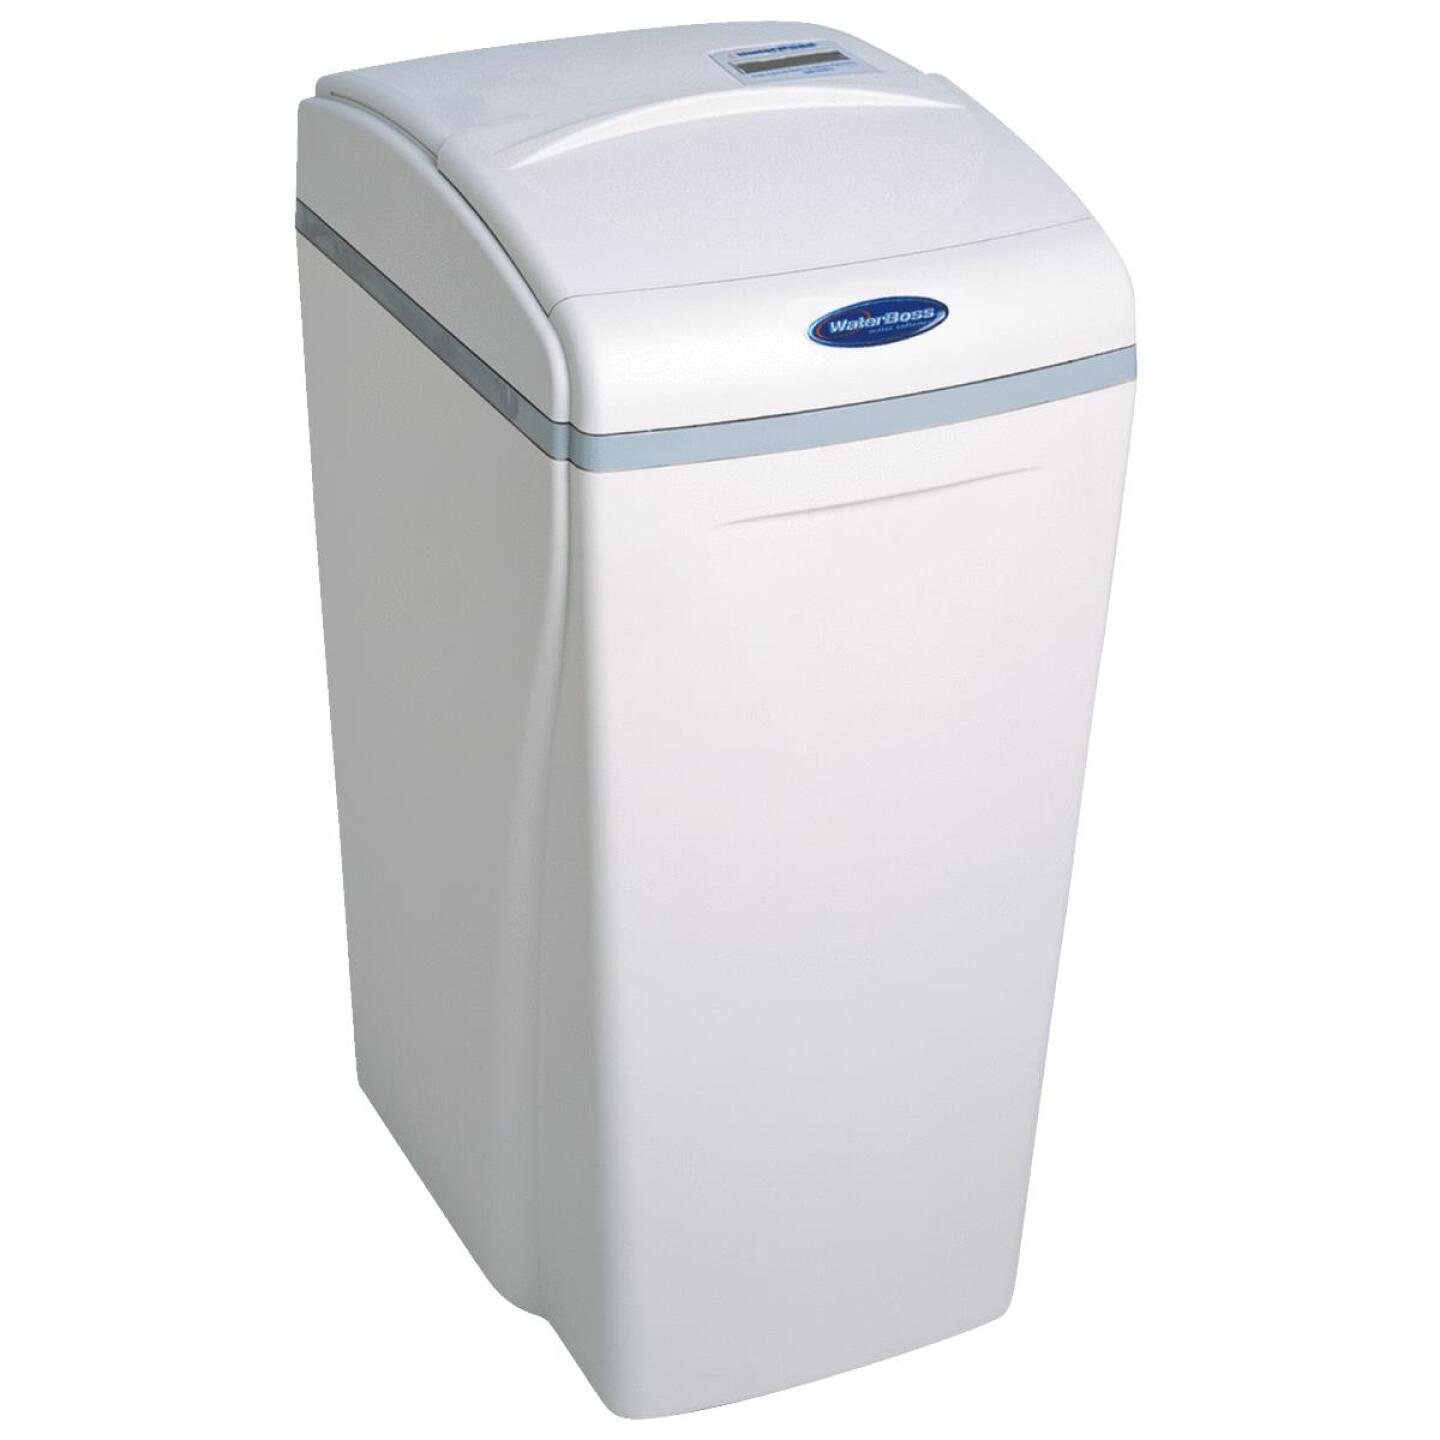 WaterBoss City Boss 22,000 Grain Water Softener Image 1